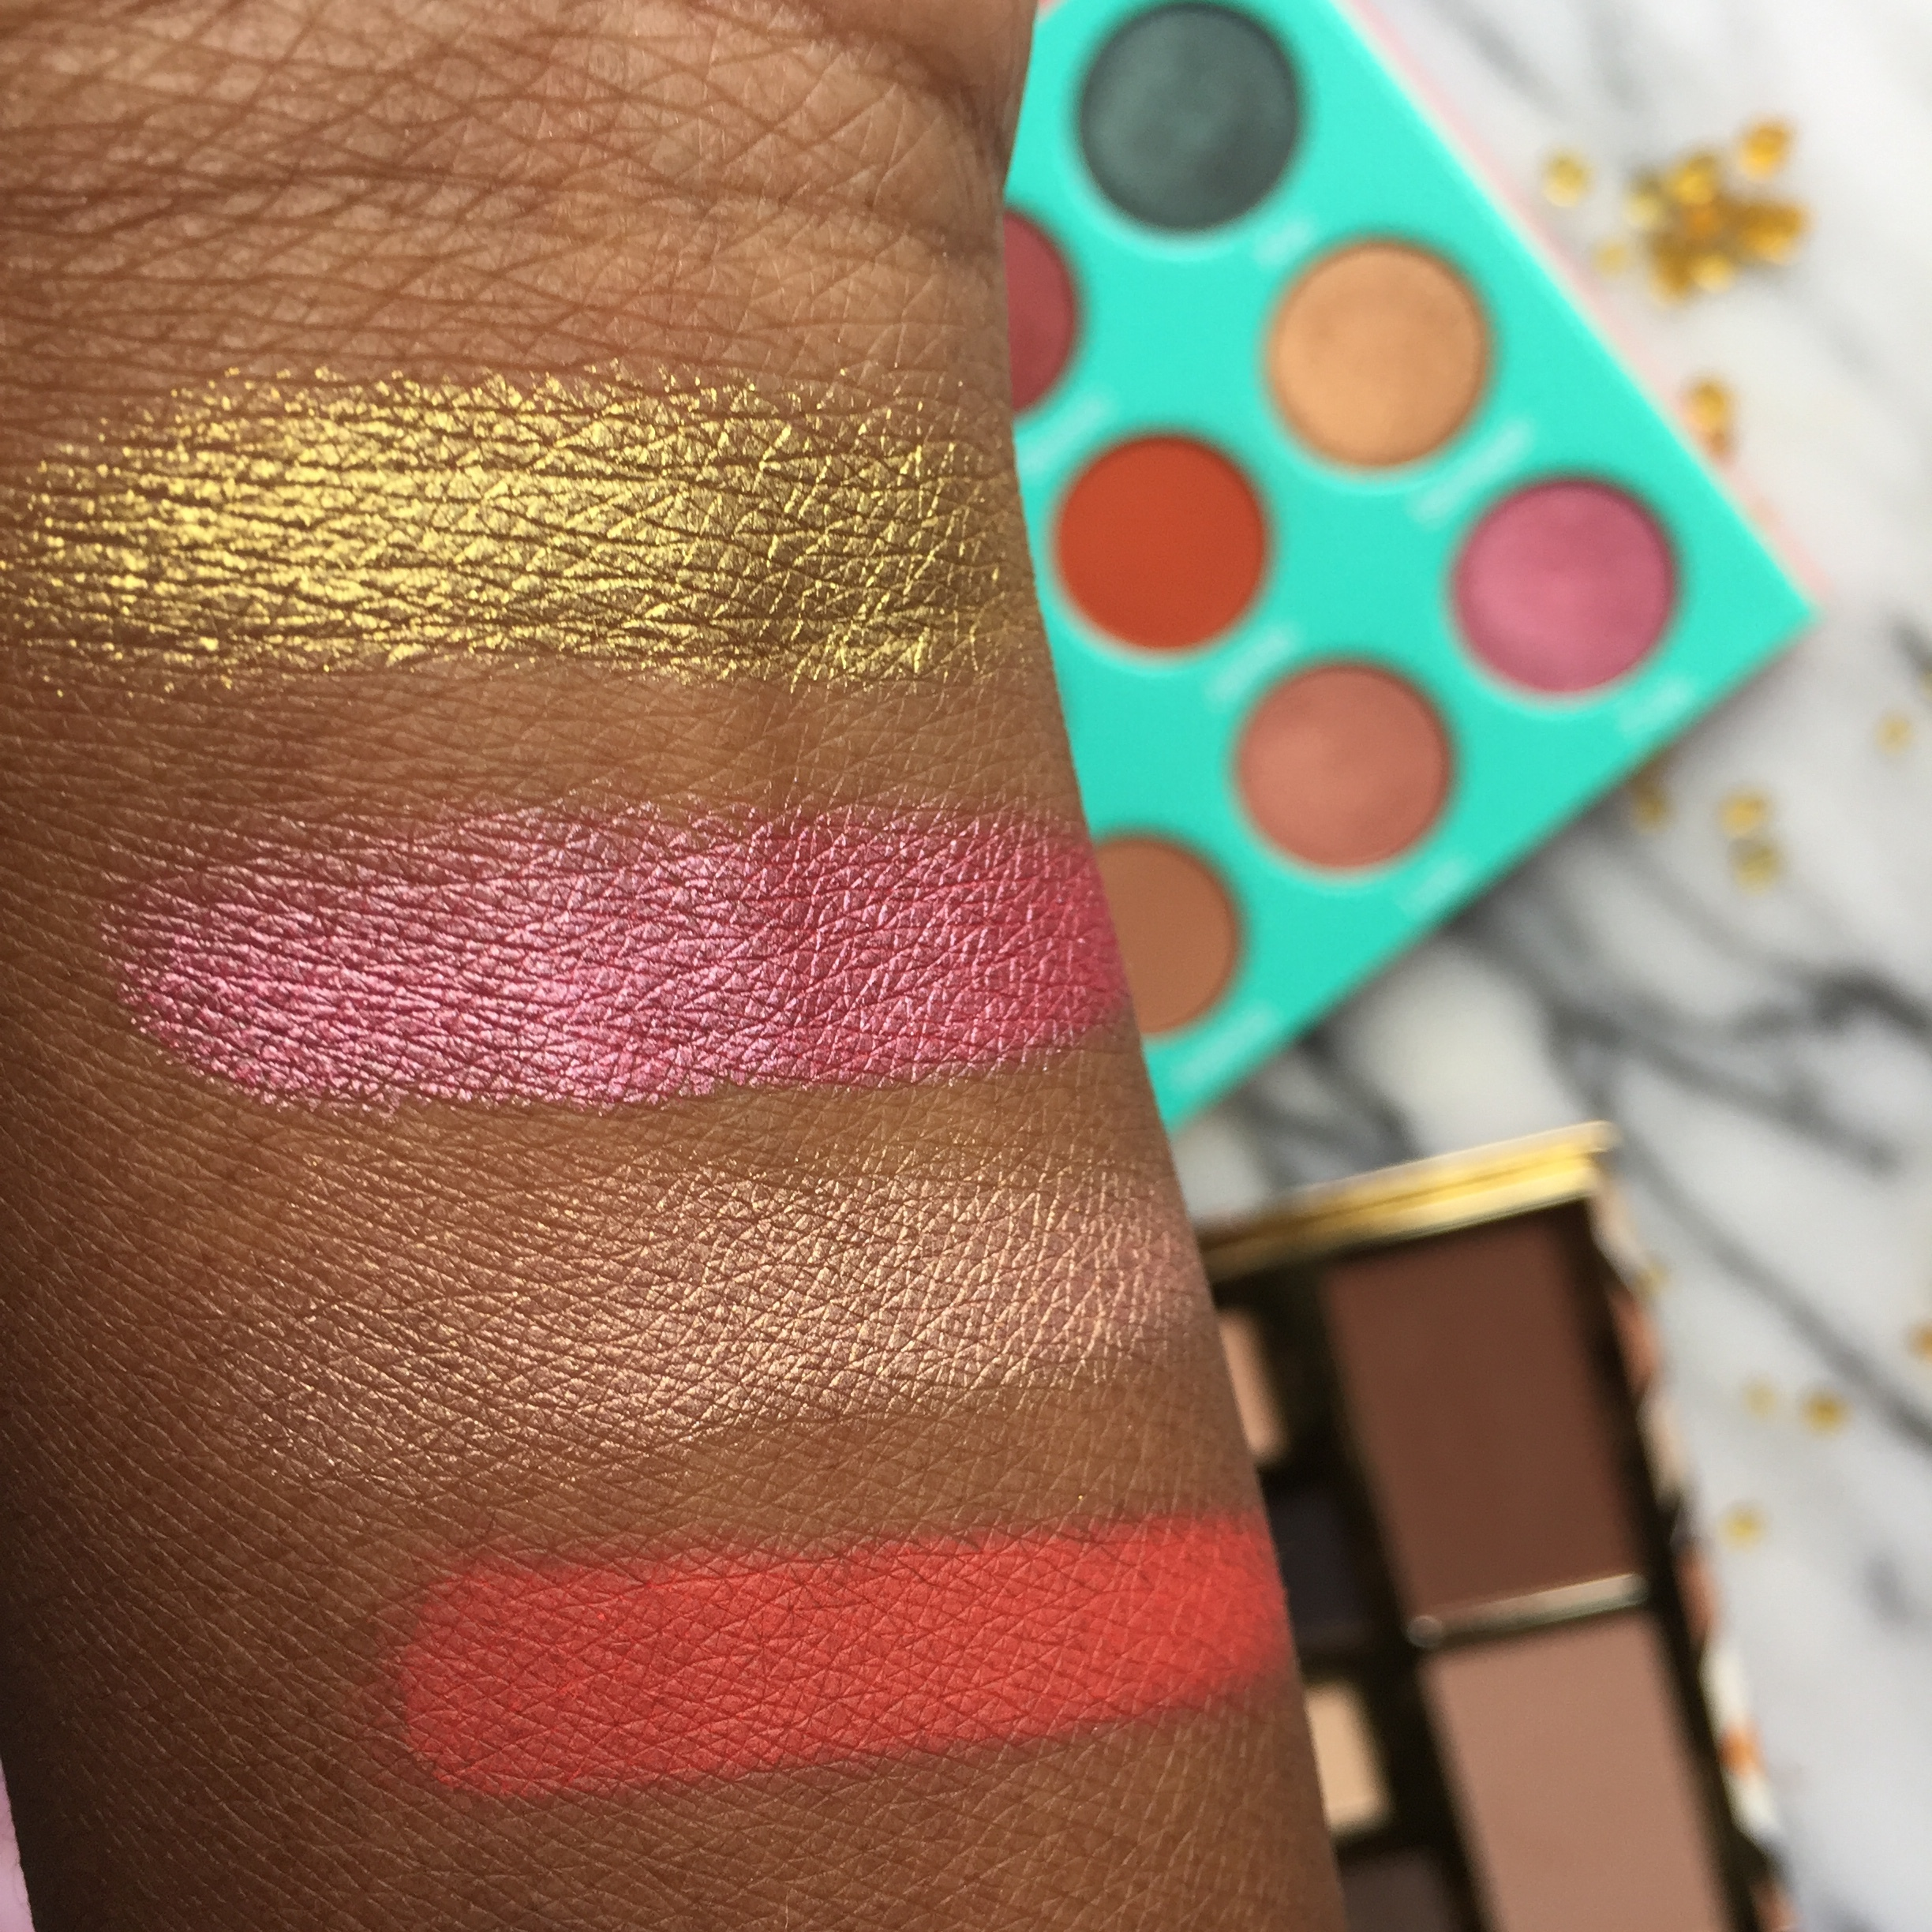 Swatches of The Juvia's Place The Saharan Eyeshadow Palette